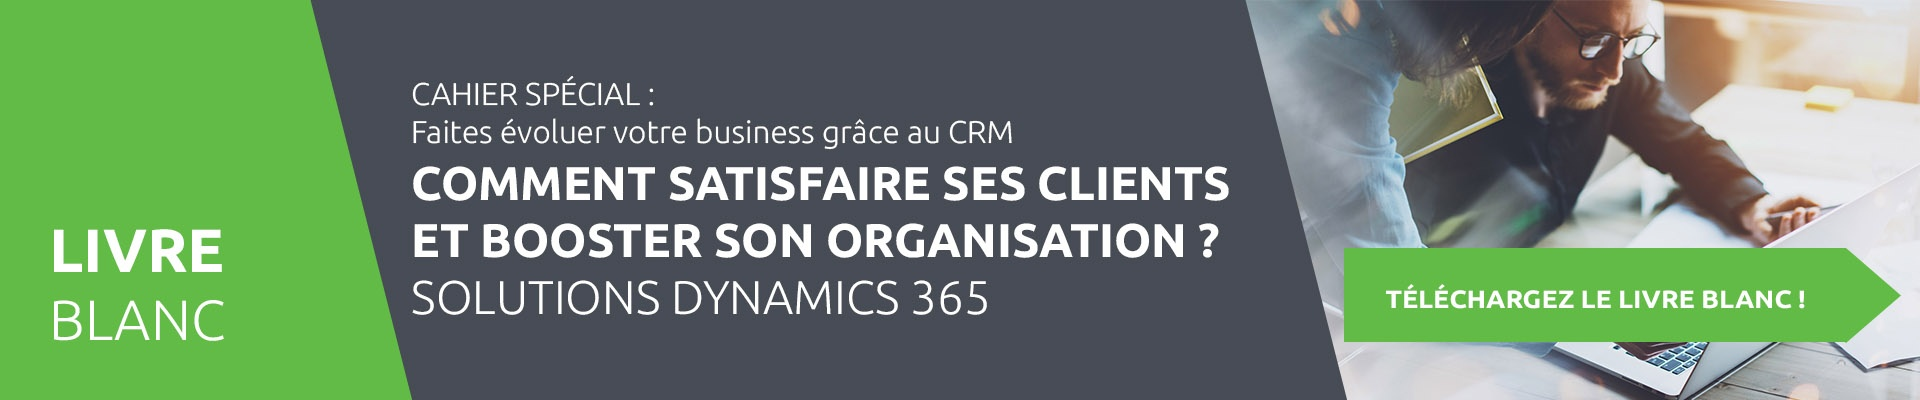 Rencontre Microsoft : Augmenter la pertinence de vos action avec Dynamics 365